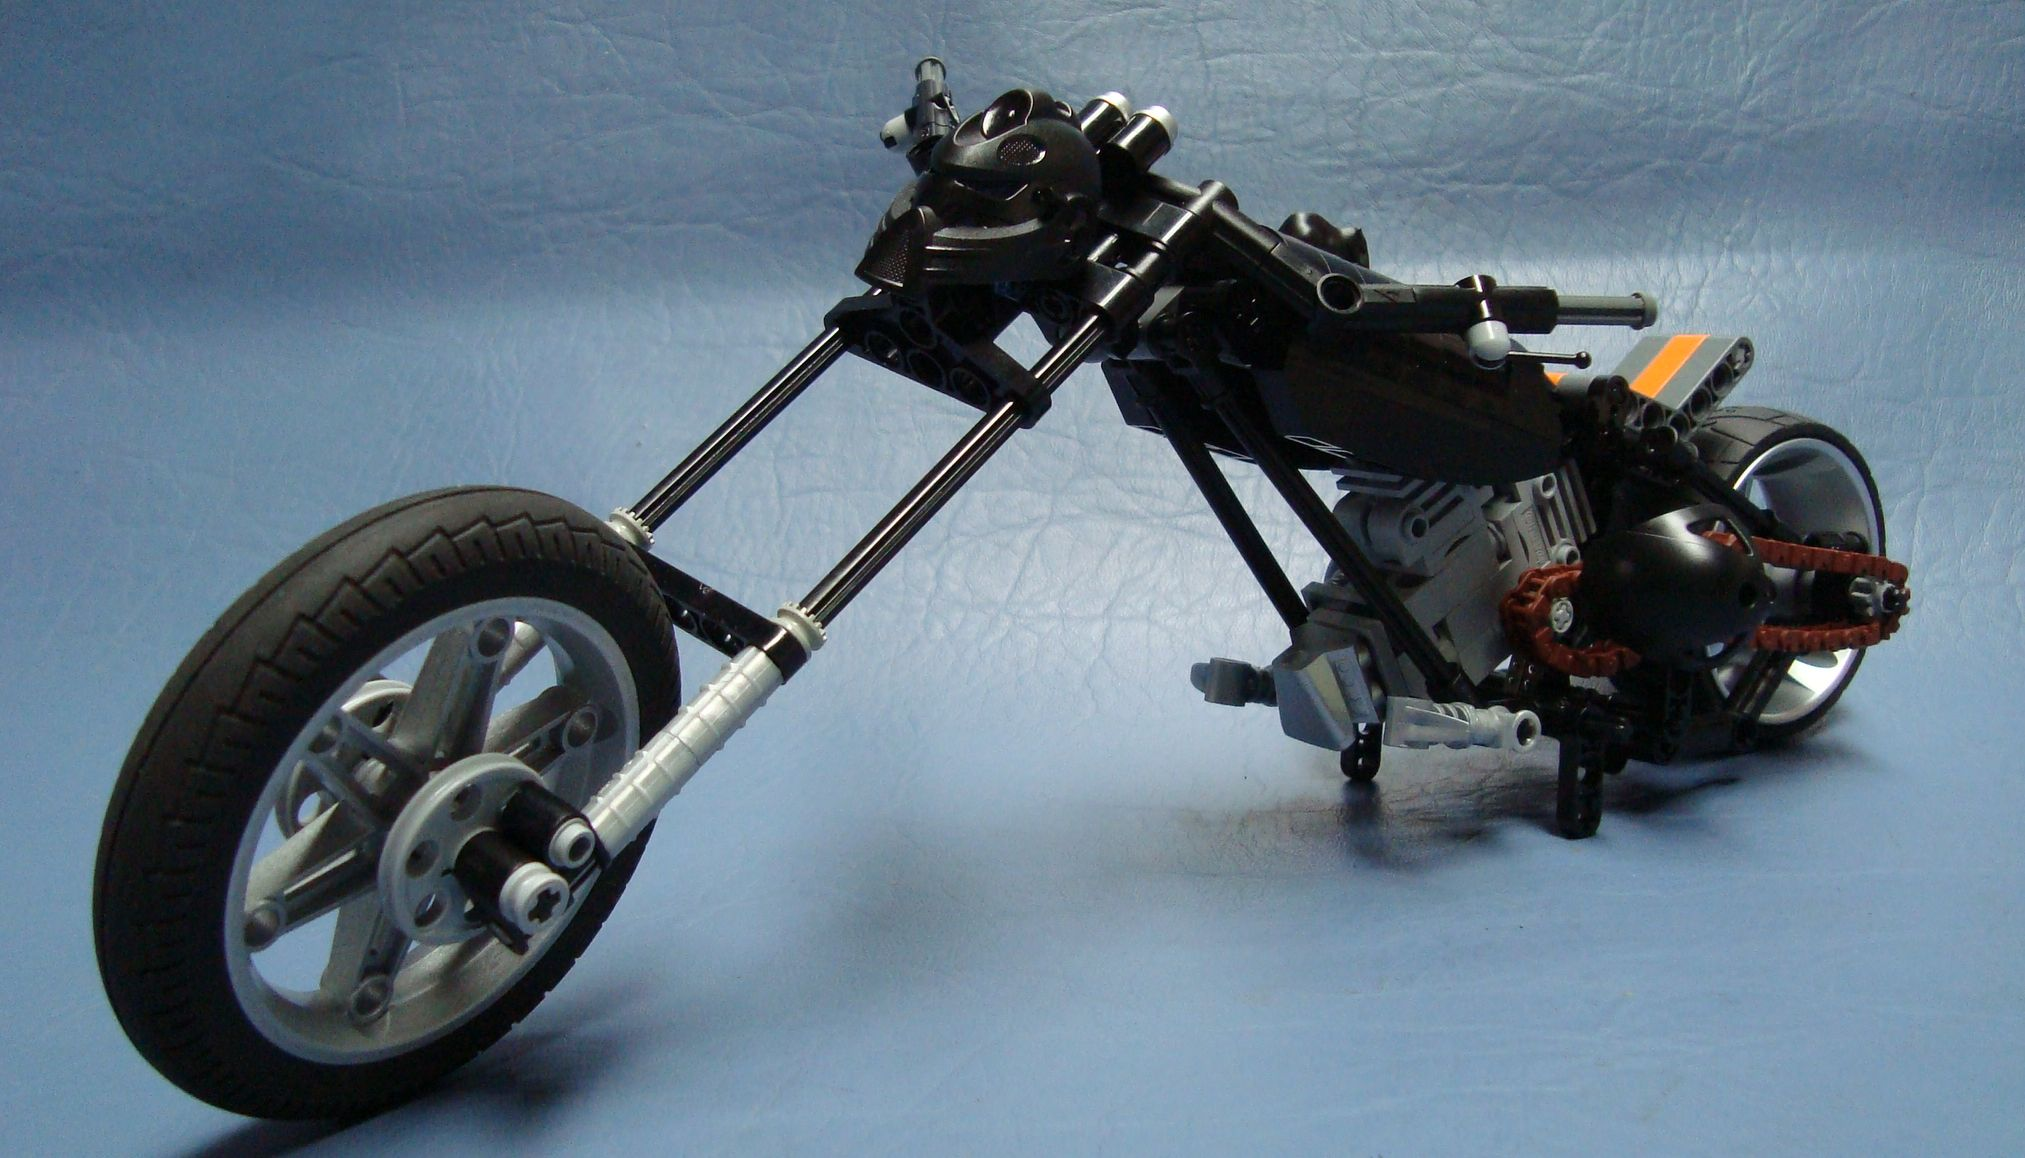 black-rat-chopper_009.jpg